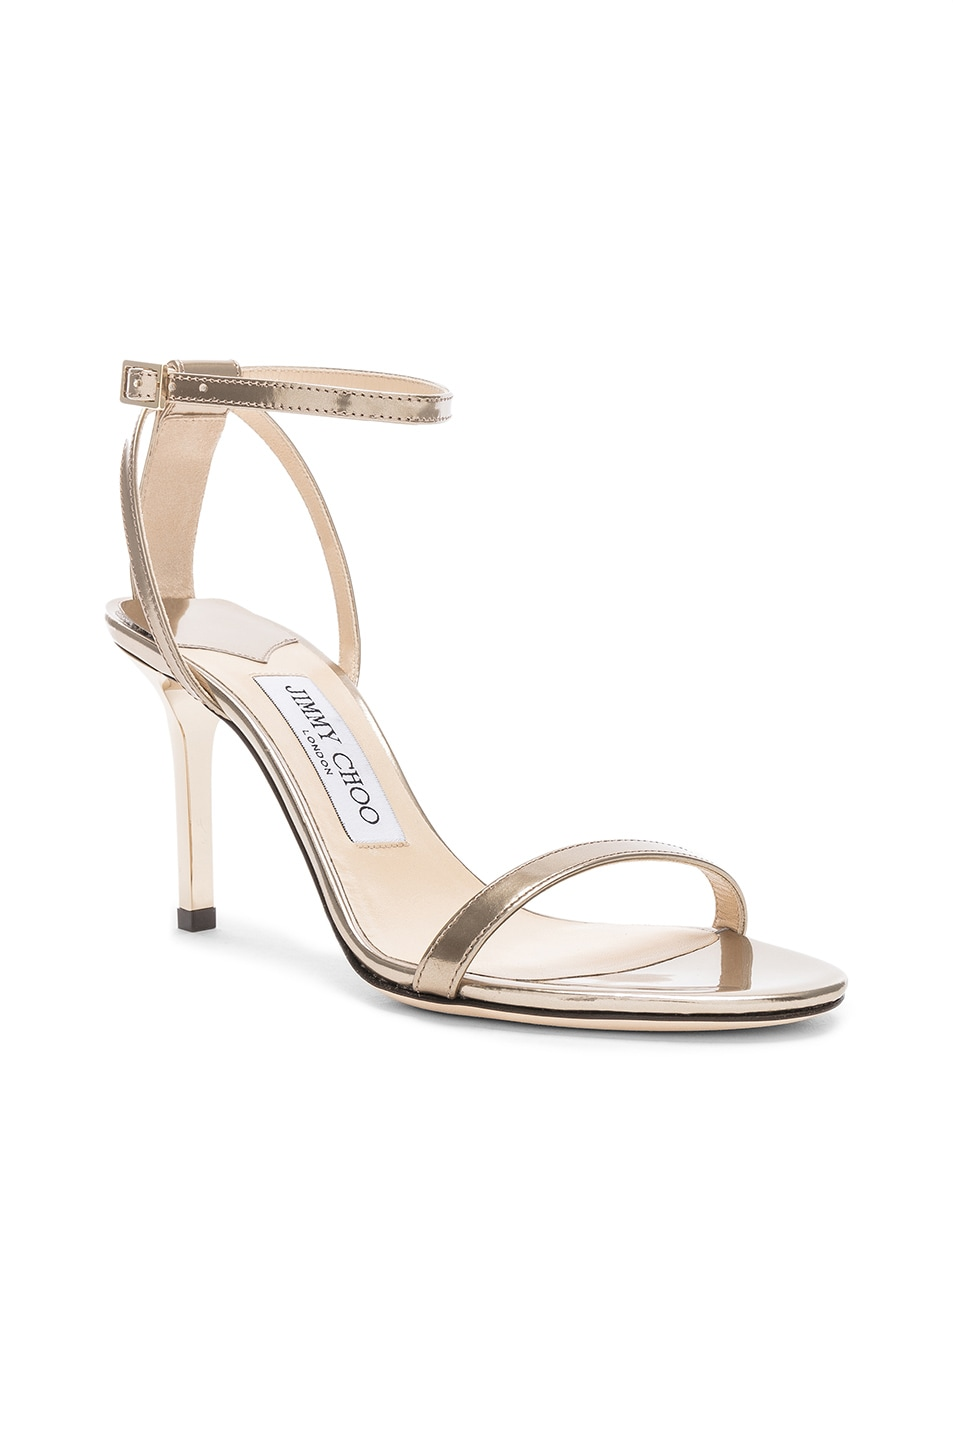 Image 2 of Jimmy Choo Minny 85 Mirror Leather Heel in Gold